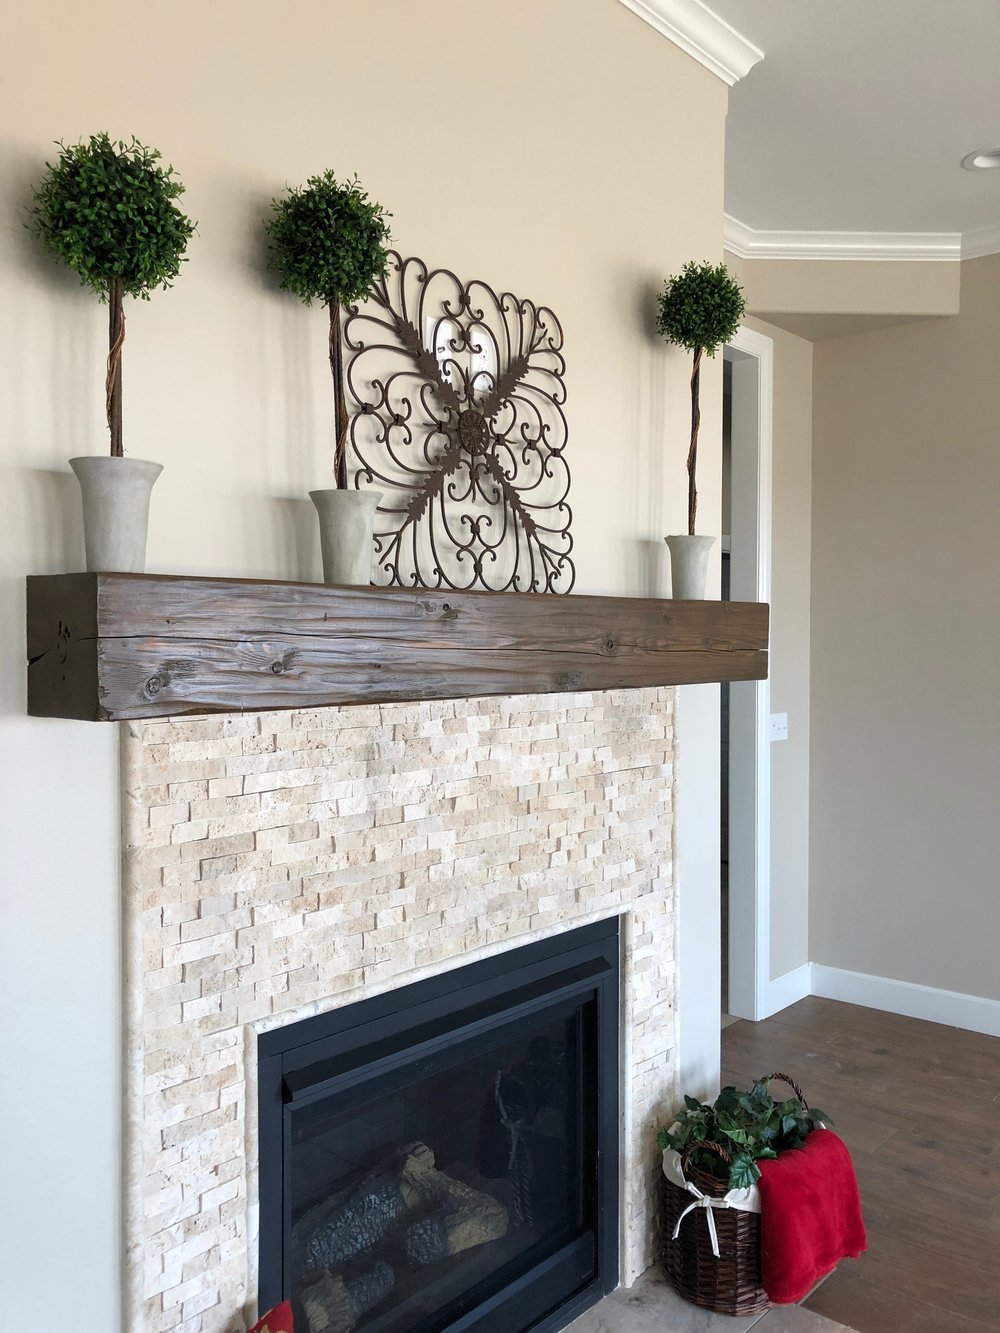 3oaklawnfireplacemantle.JPG